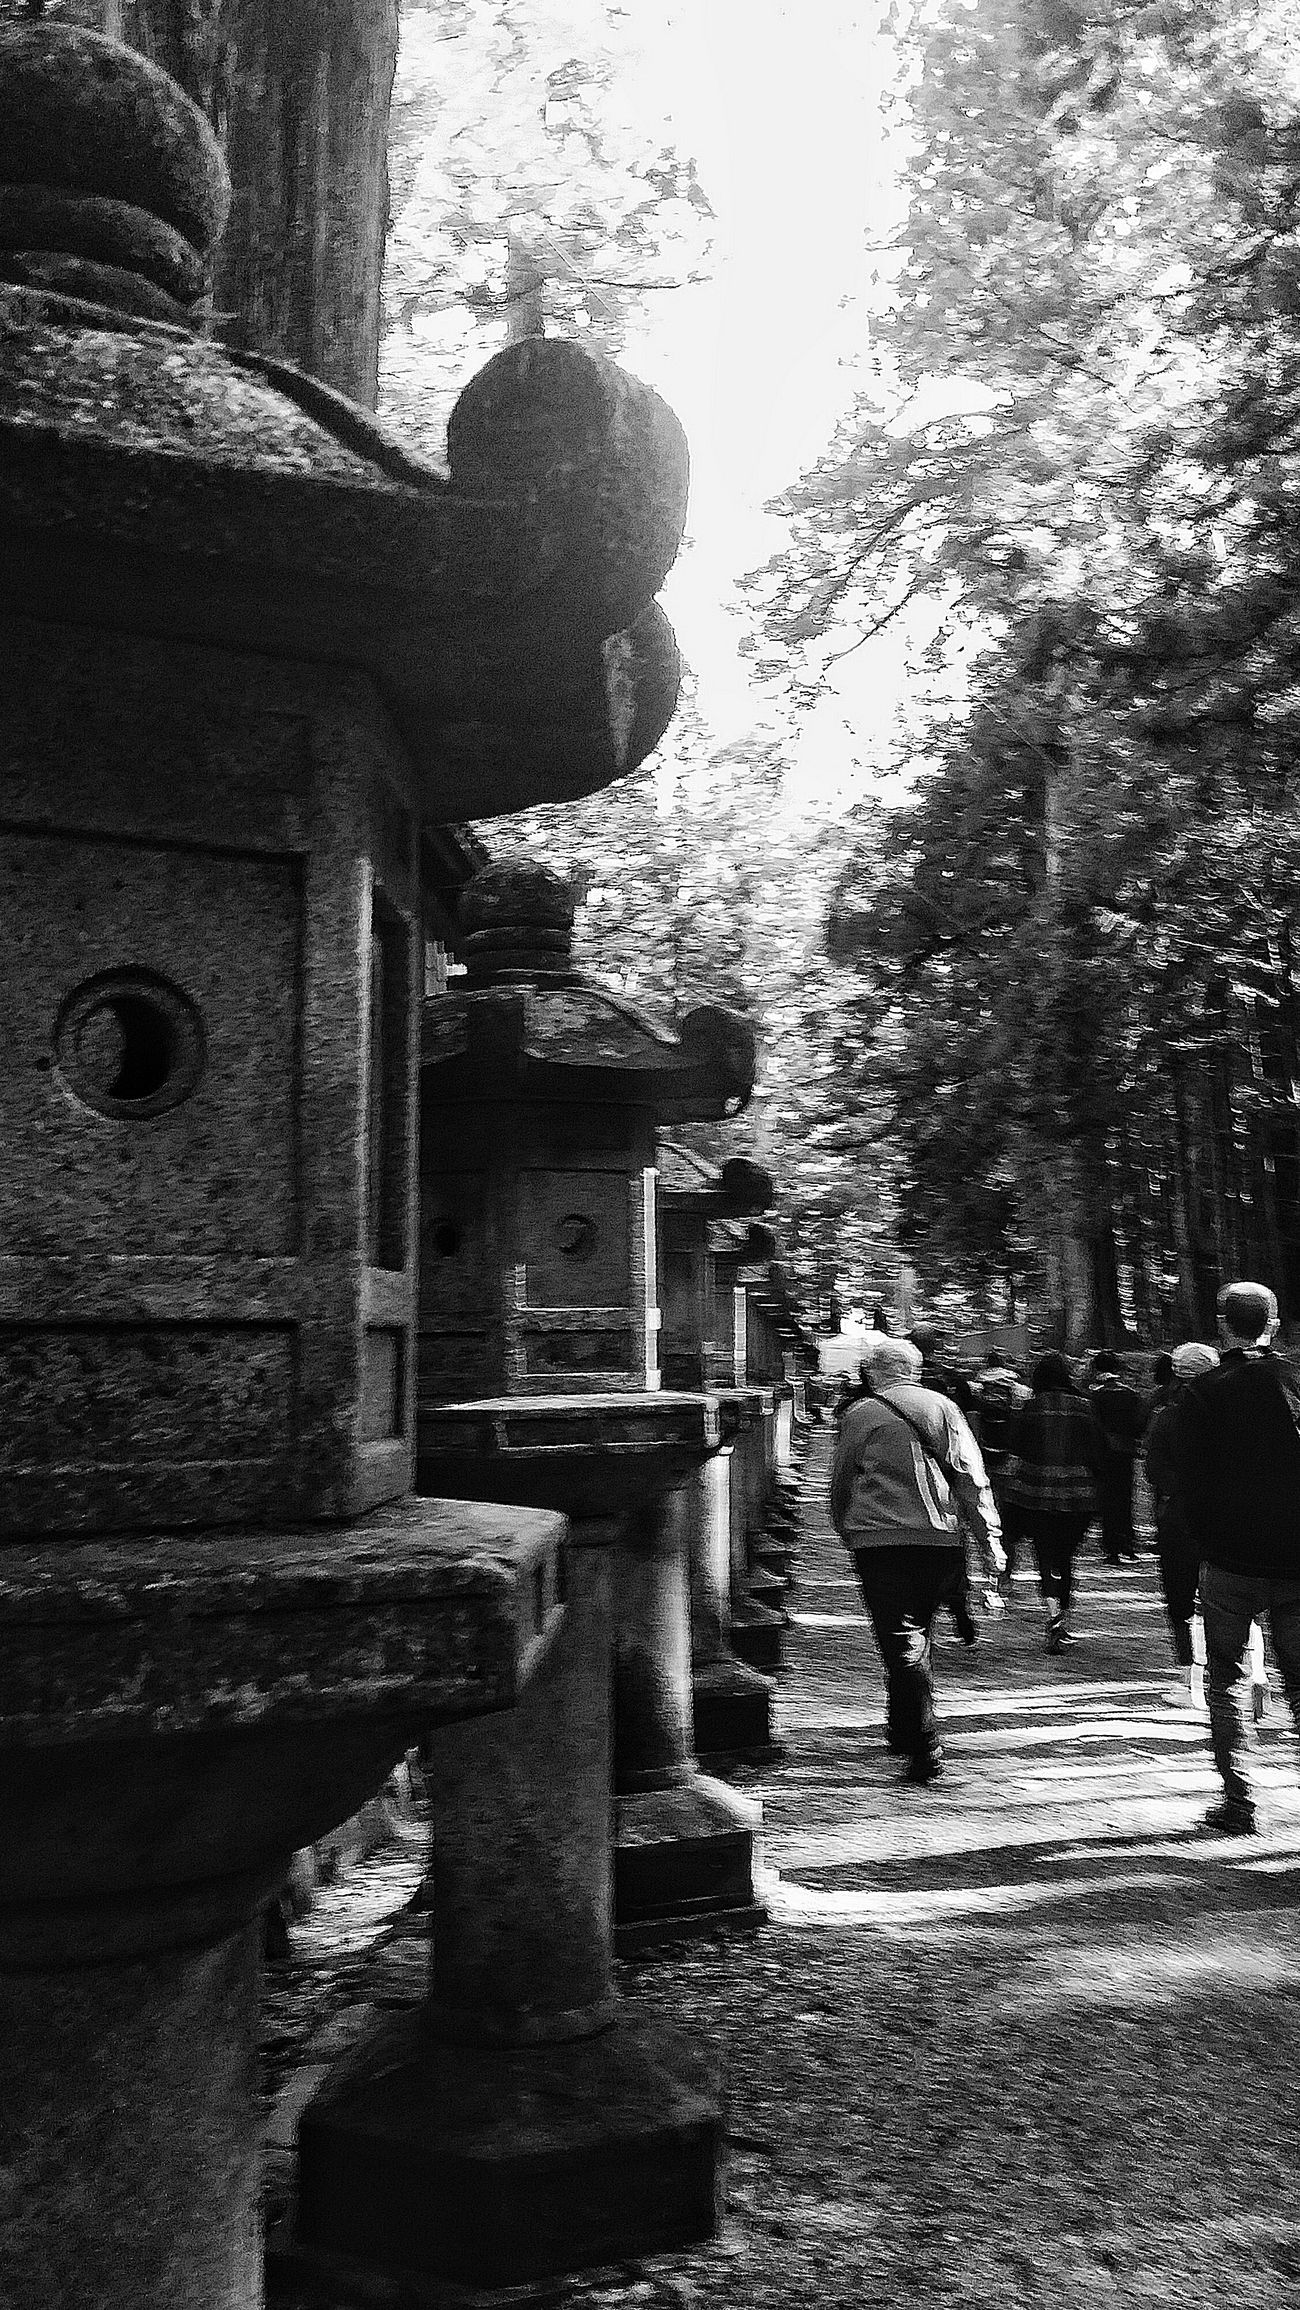 Stone Lanterns Lined Up Toshogu Shrine Nikko Tochigi Prefecture Autumn Japanautumn2015 Bnw Bnwphotography Bnwcollection Bnw_captures Bnw_japan Bnw_streetphotography Japan Travelphotography Streetphotography